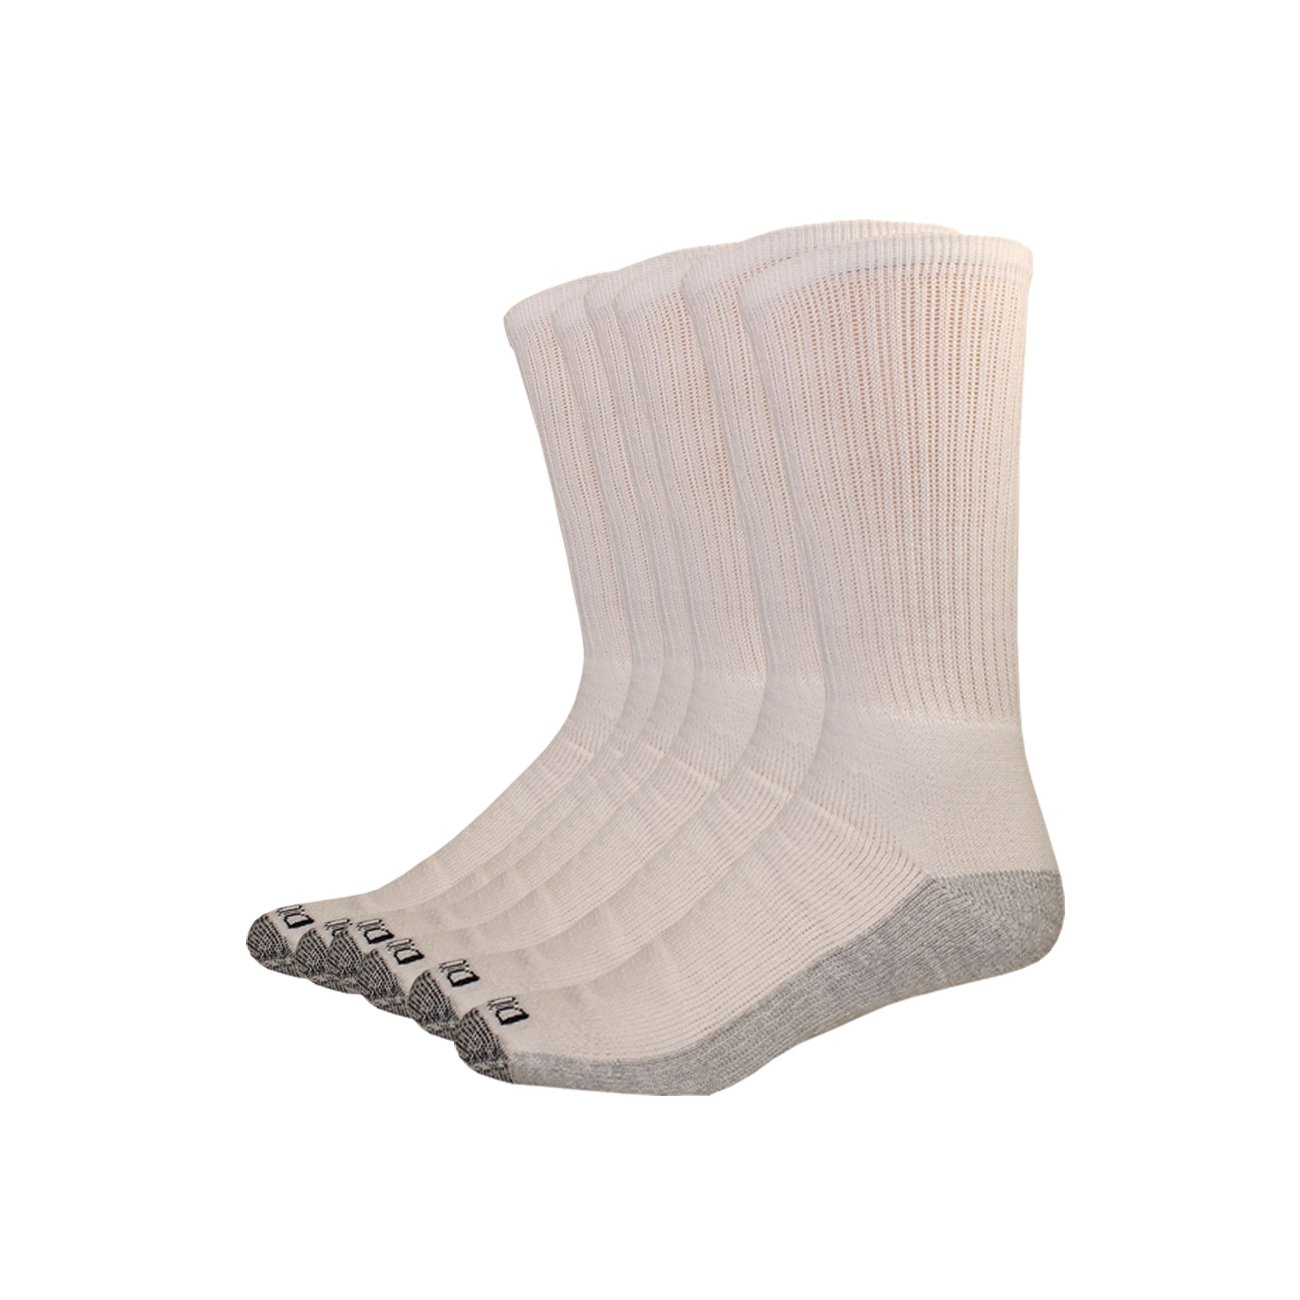 Dickies Mens 6 Pack Dri-Tech Comfort Crew Socks